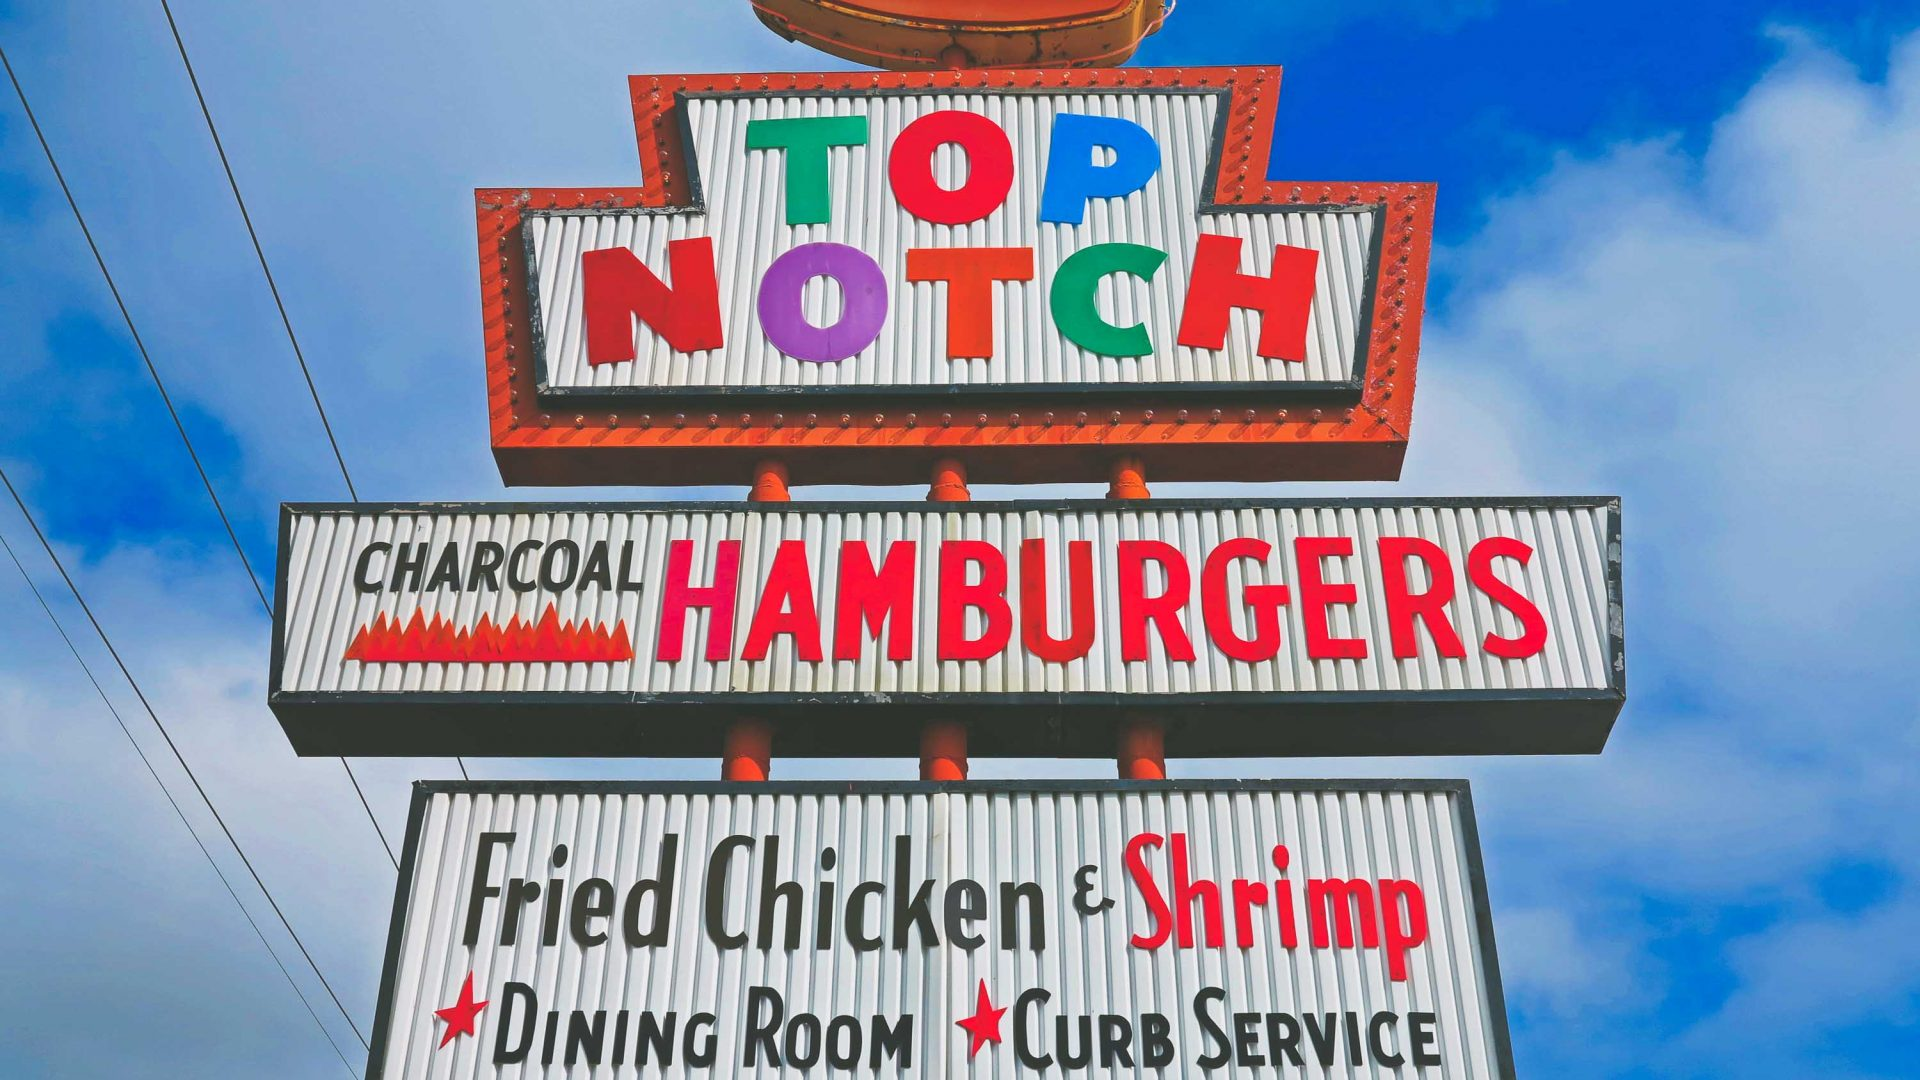 Top Notch Hamburgers, a 1970s-era burger joint where '90s coming-of-age classic Dazed and Confused was filmed.